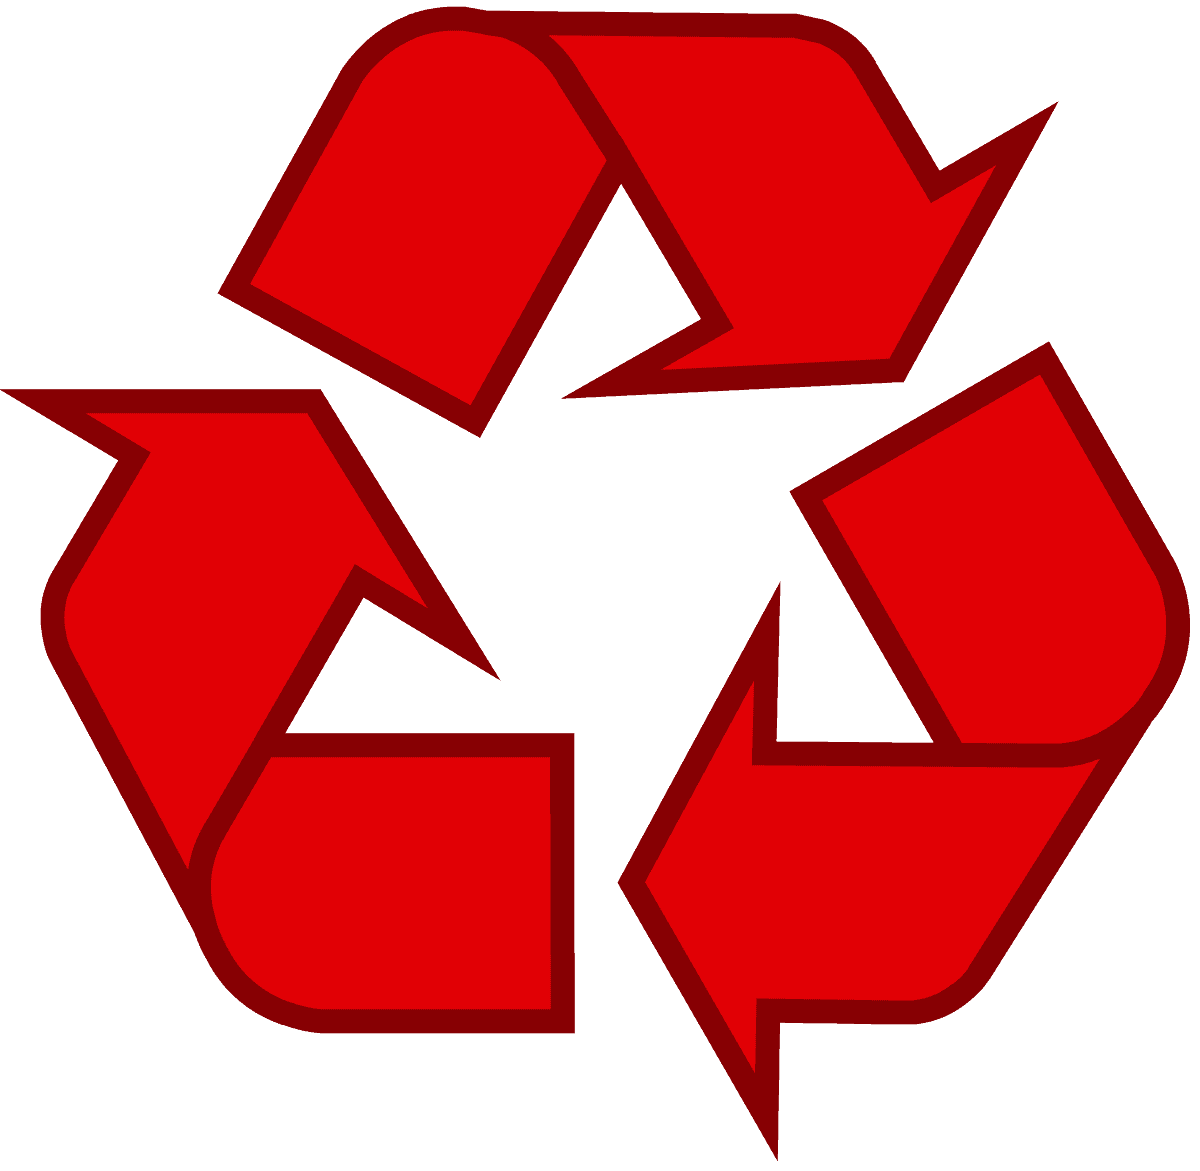 Download recycling symbol the original recycle logo recycling symbol icon outline solid red buycottarizona